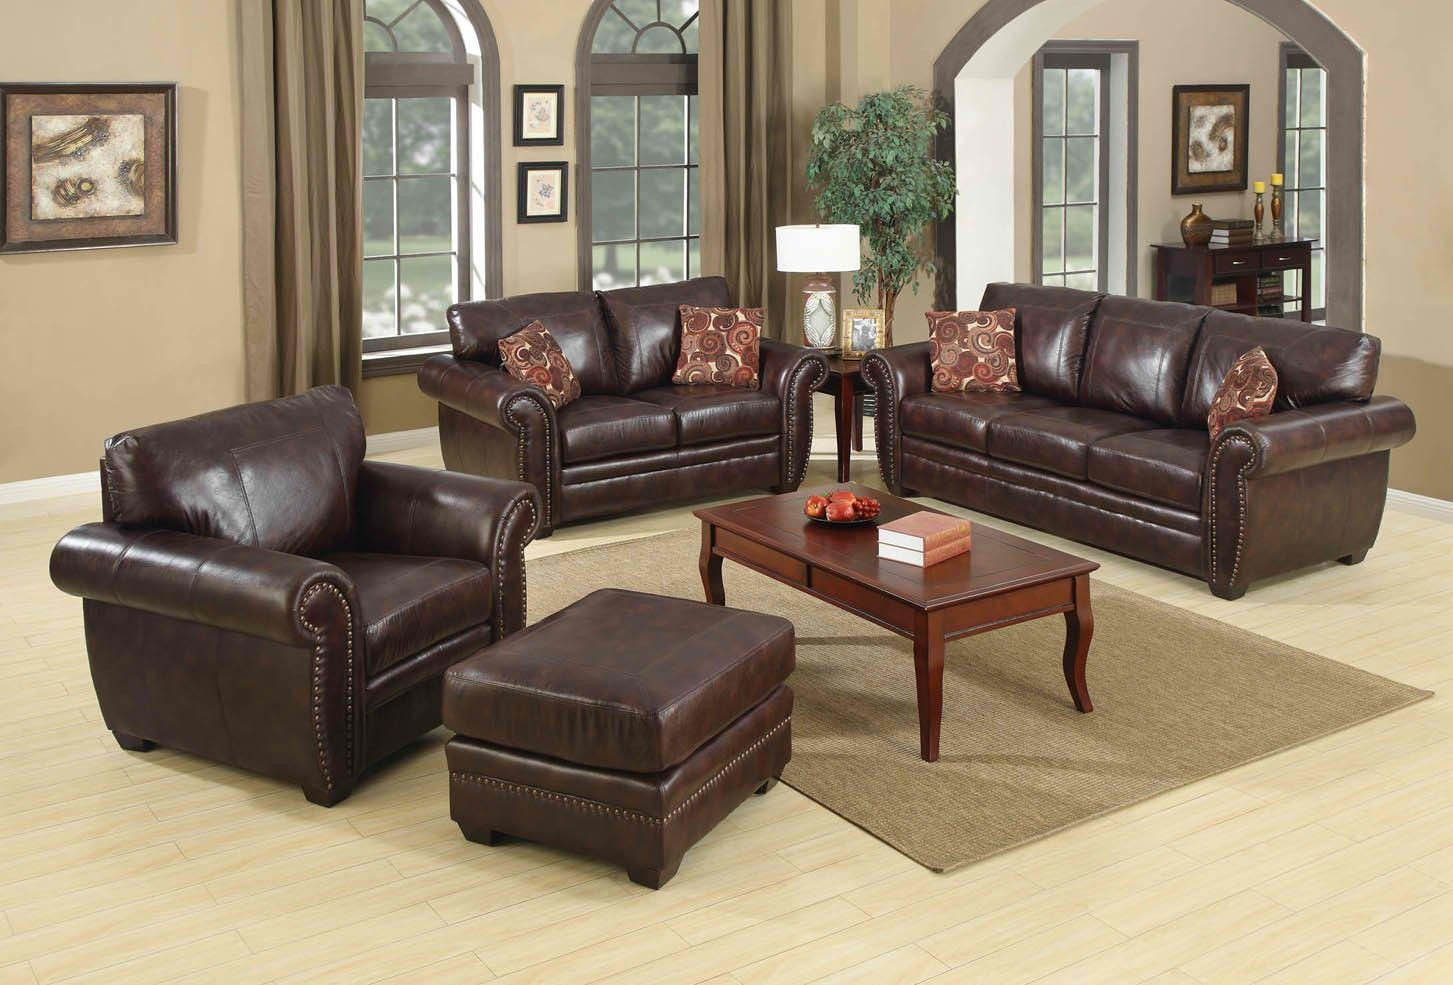 Wall Colors For Brown Furniture List 17 Ideas In Best Color With Dark Leather Sofa Pictures